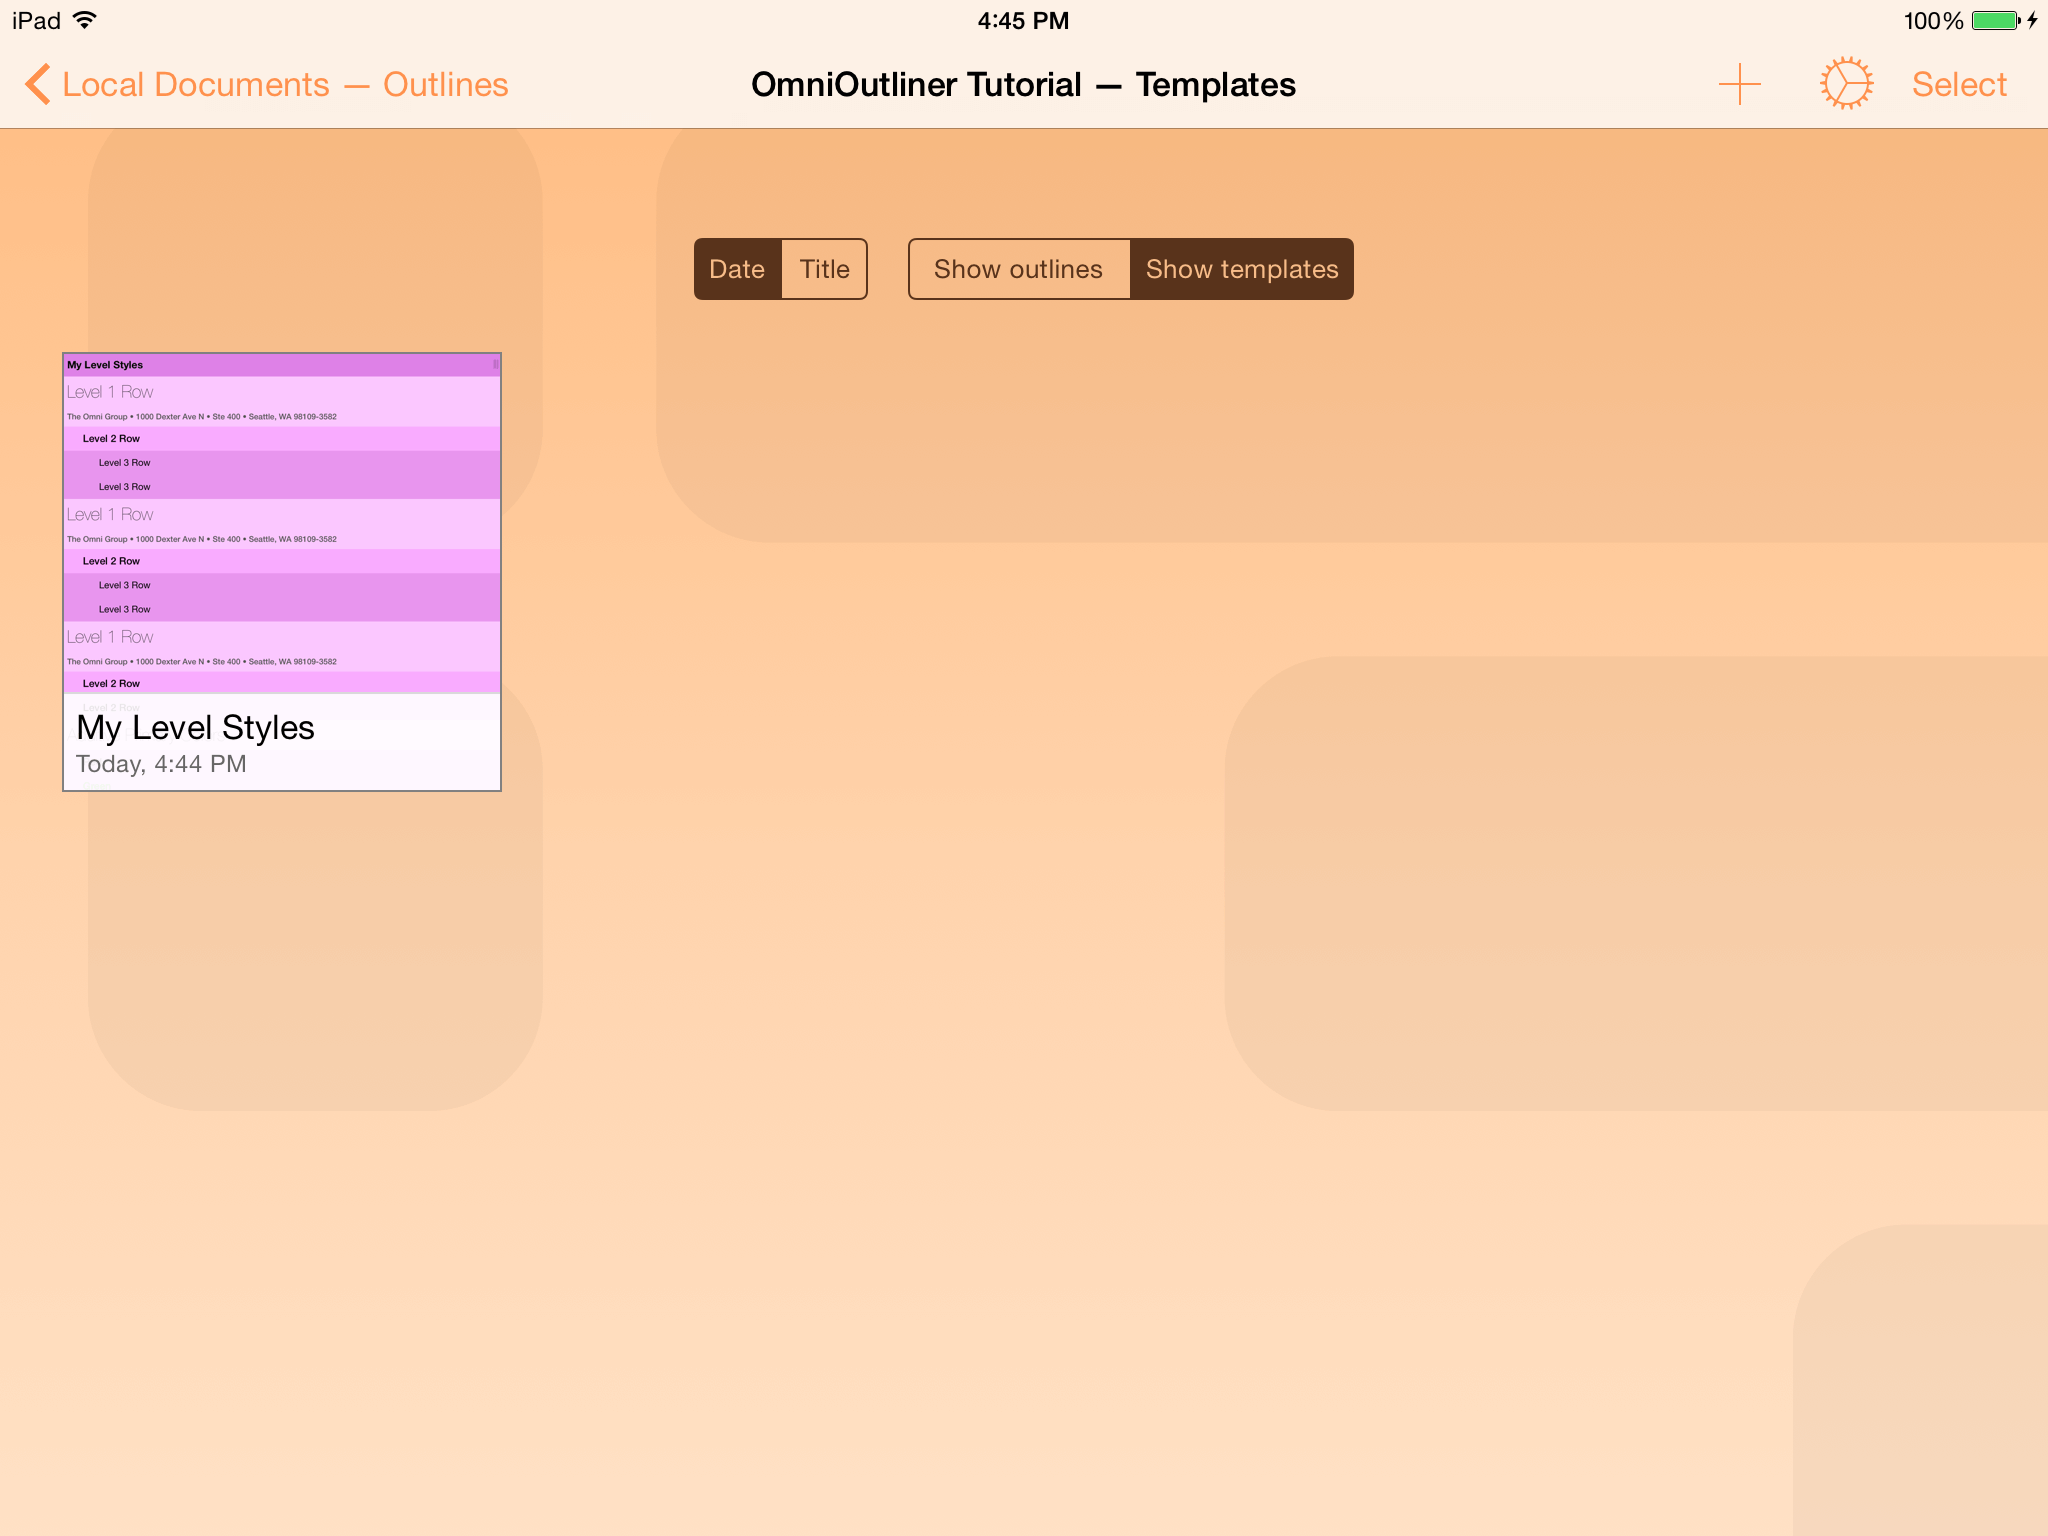 omnioutliner templates - omnioutliner 2 9 for ios user manual working in the cloud